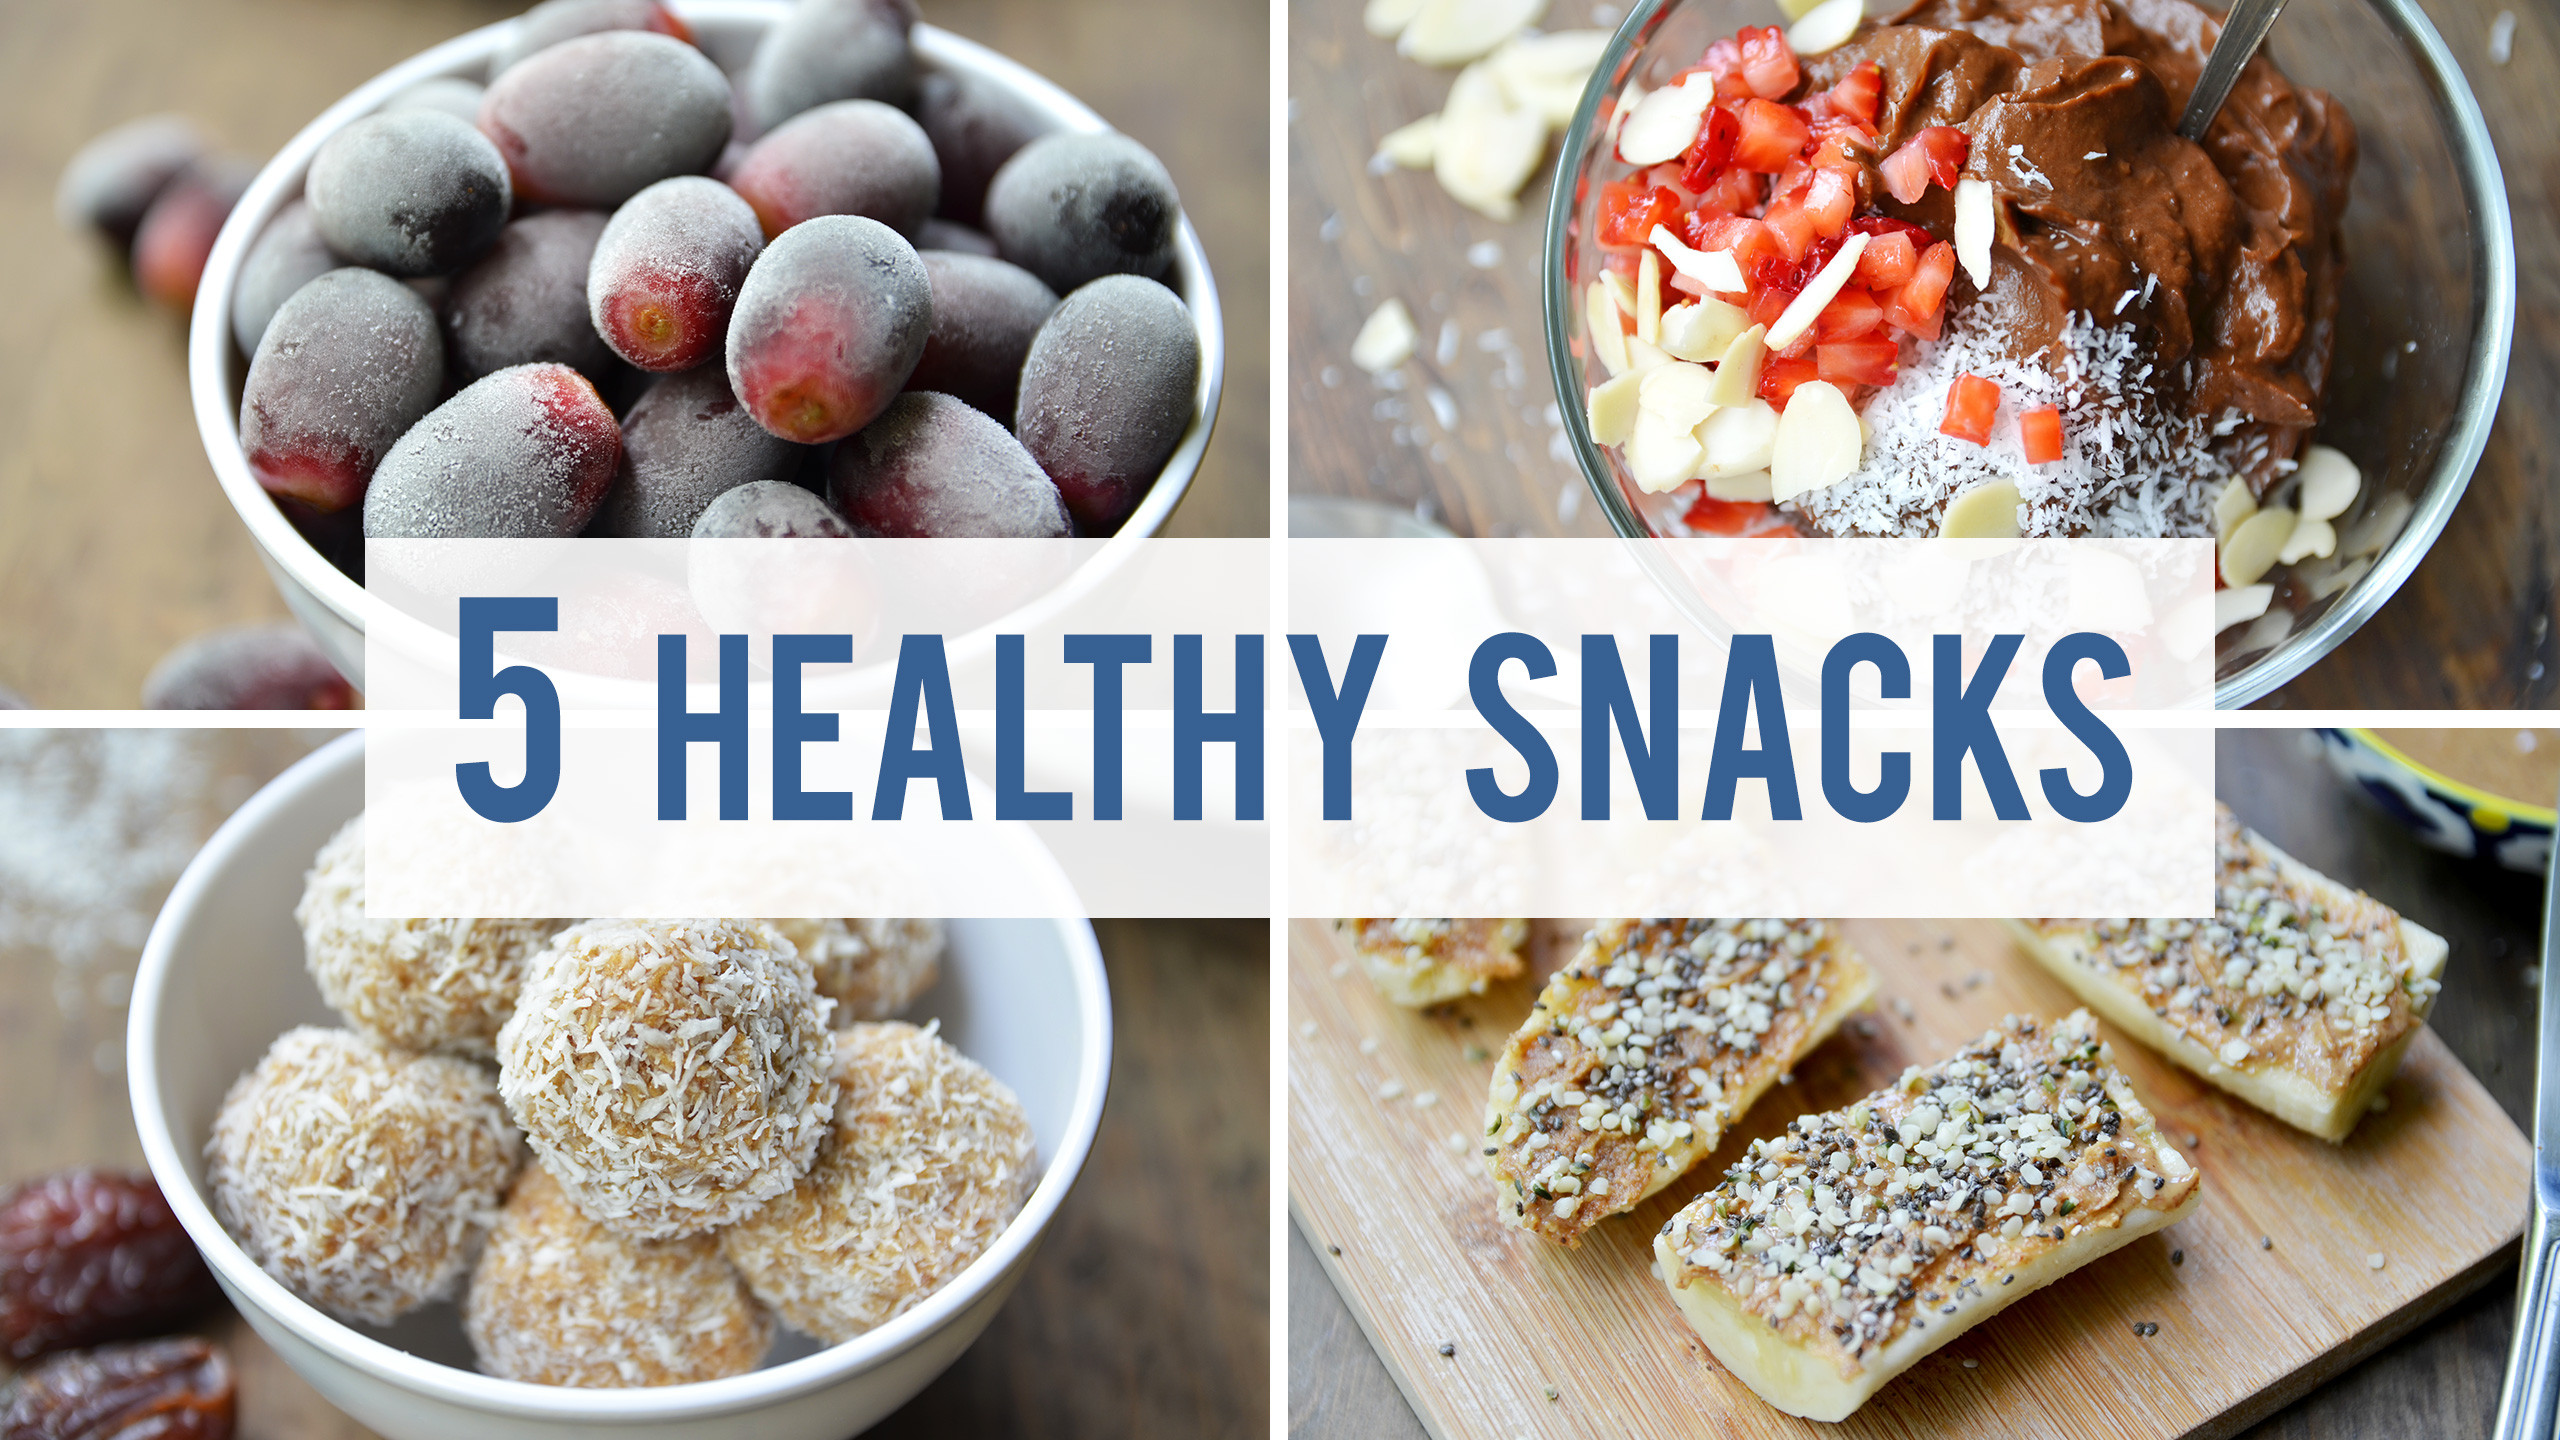 Healthy Recipes Snacks  5 Healthy Snacks For Your Sweet Tooth Fablunch